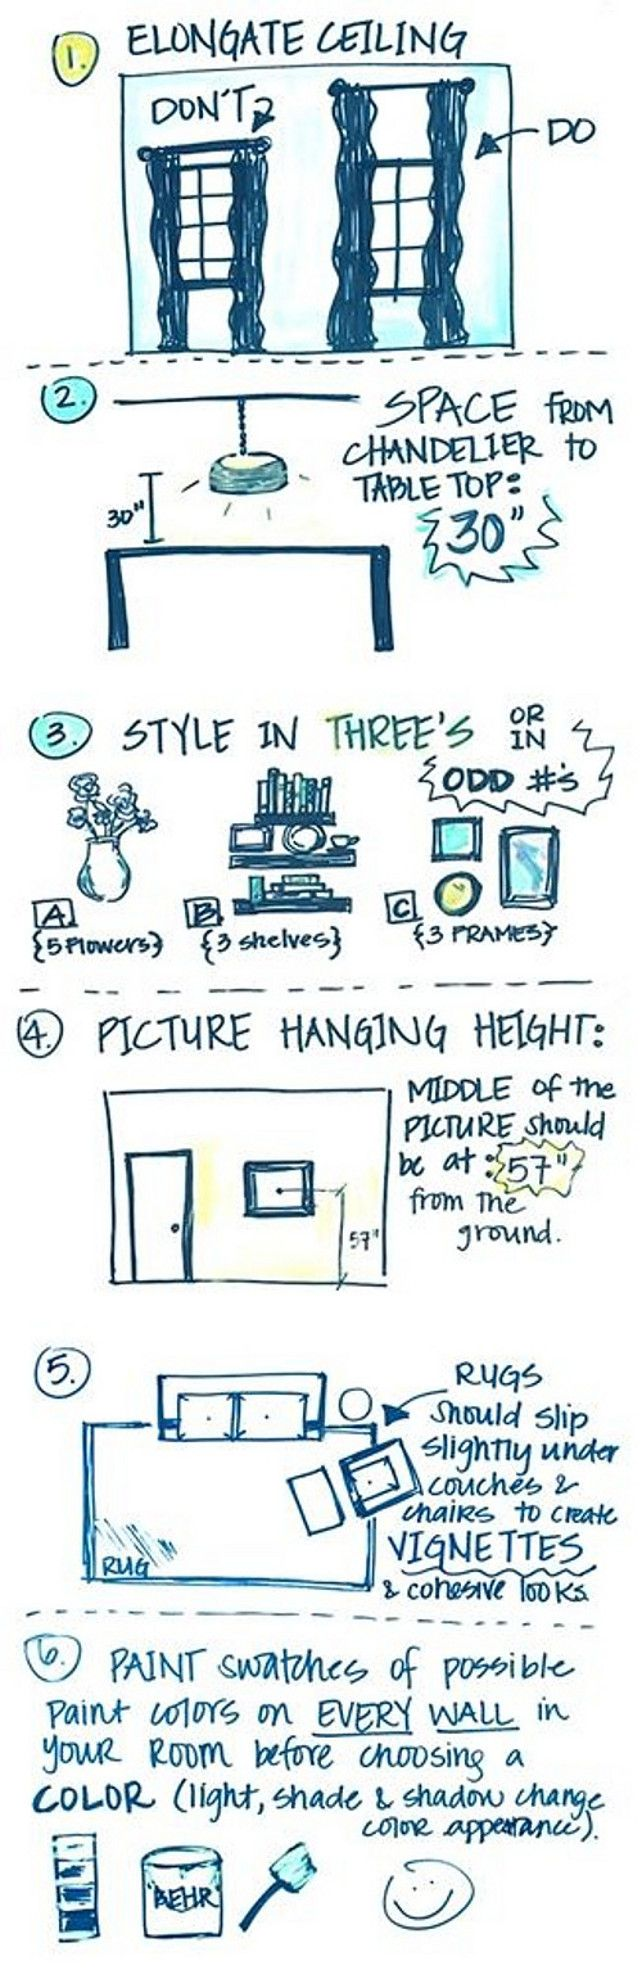 Inside Design Tips And Guidelines. Easy Methods To Make Your Ceilings Look Taller. Distanc…